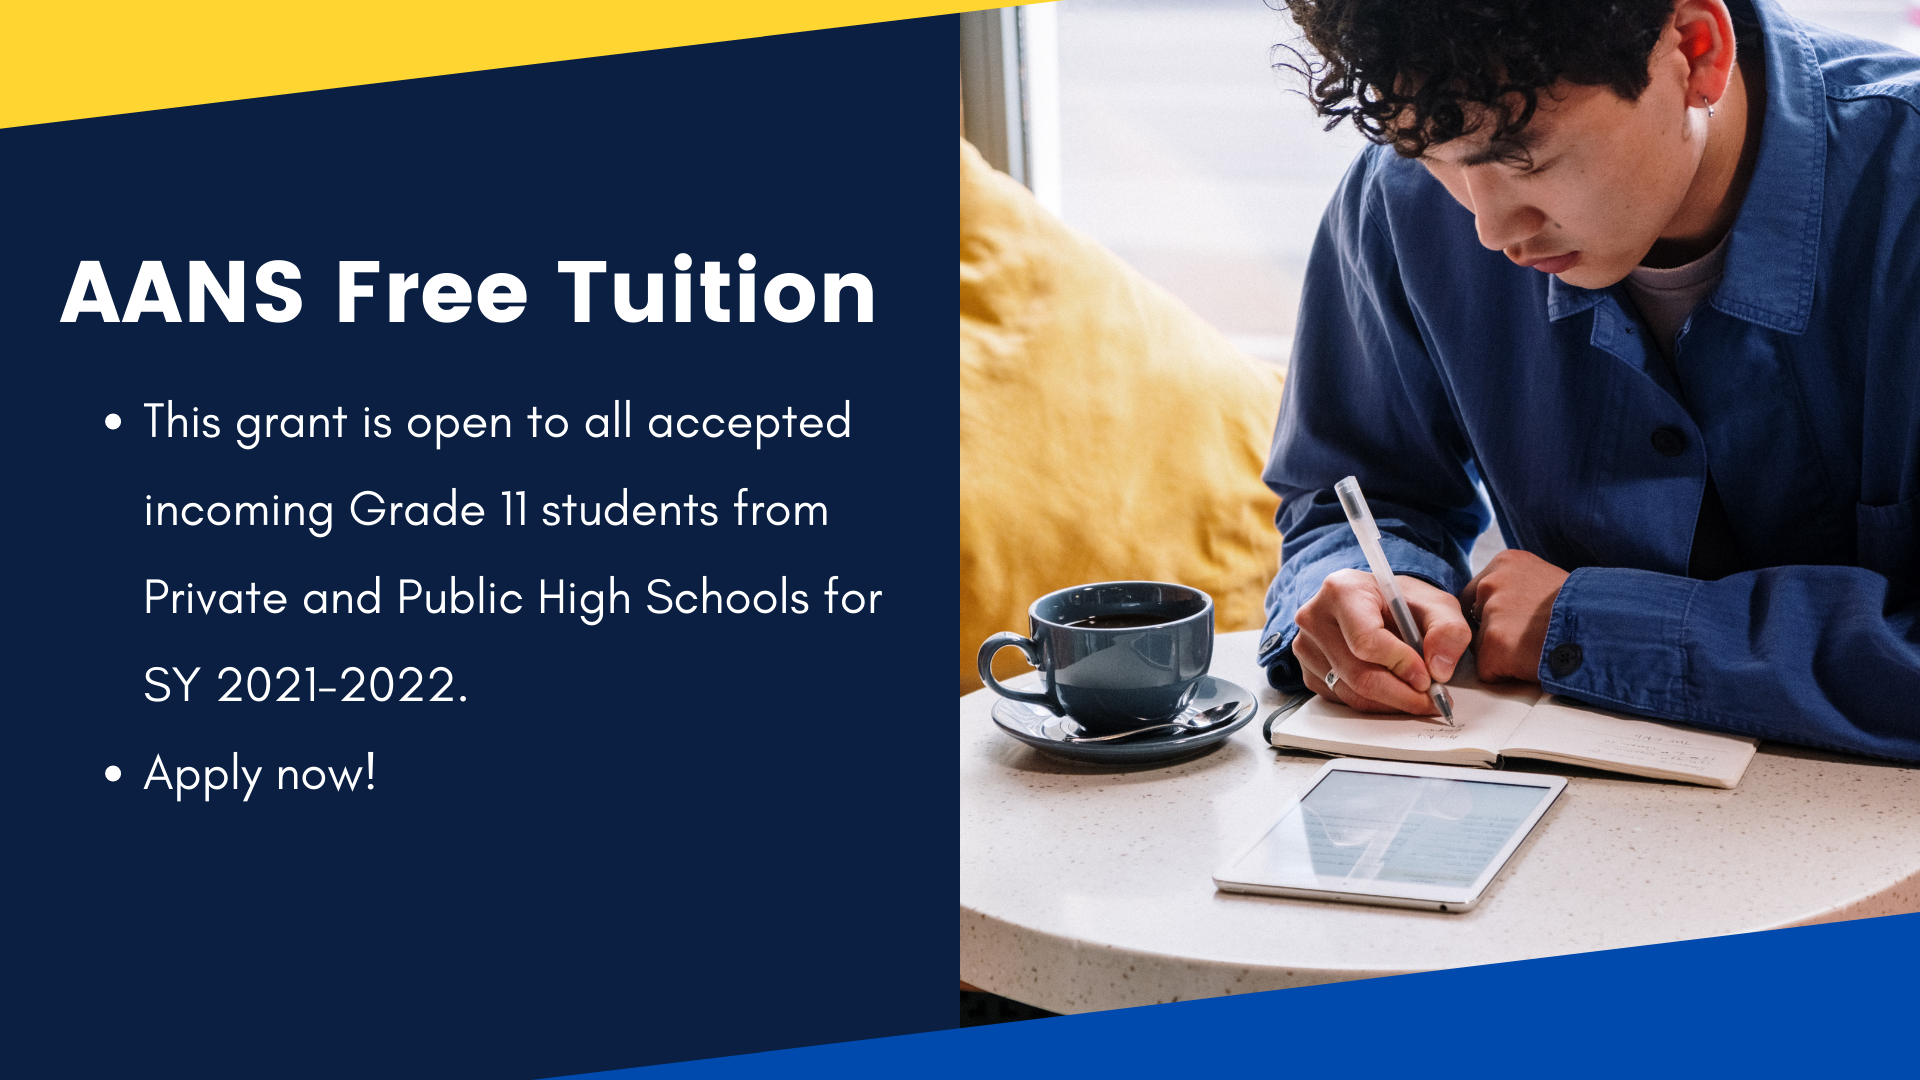 This grant is open to all accepted incoming Grade 11 students from Private and Public High Schools for SY 2021-2022. Apply now at (paste link for enrollment)